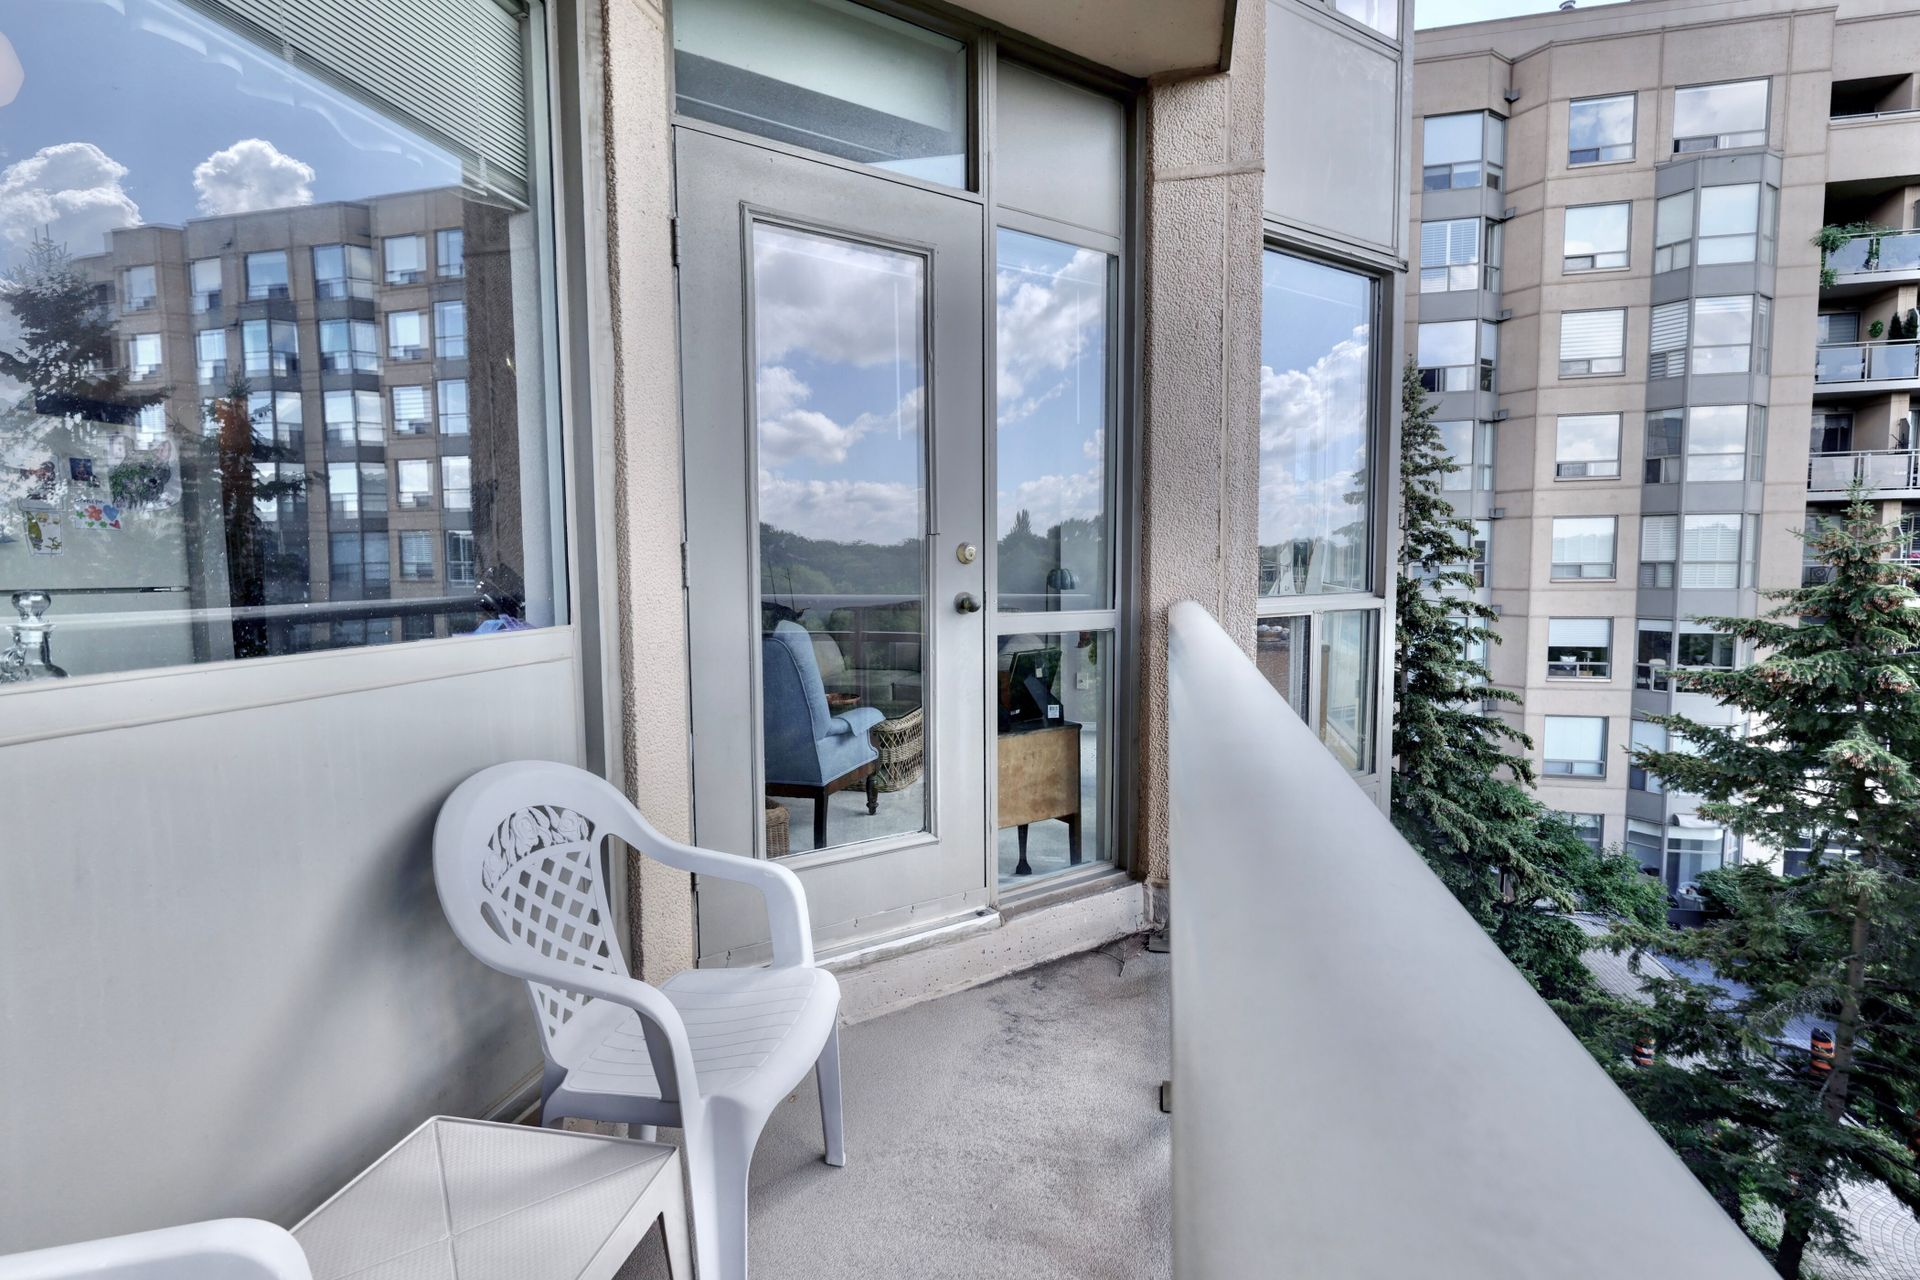 Balcony at 403 - 2511 Lakeshore Road West, Bronte West, Oakville